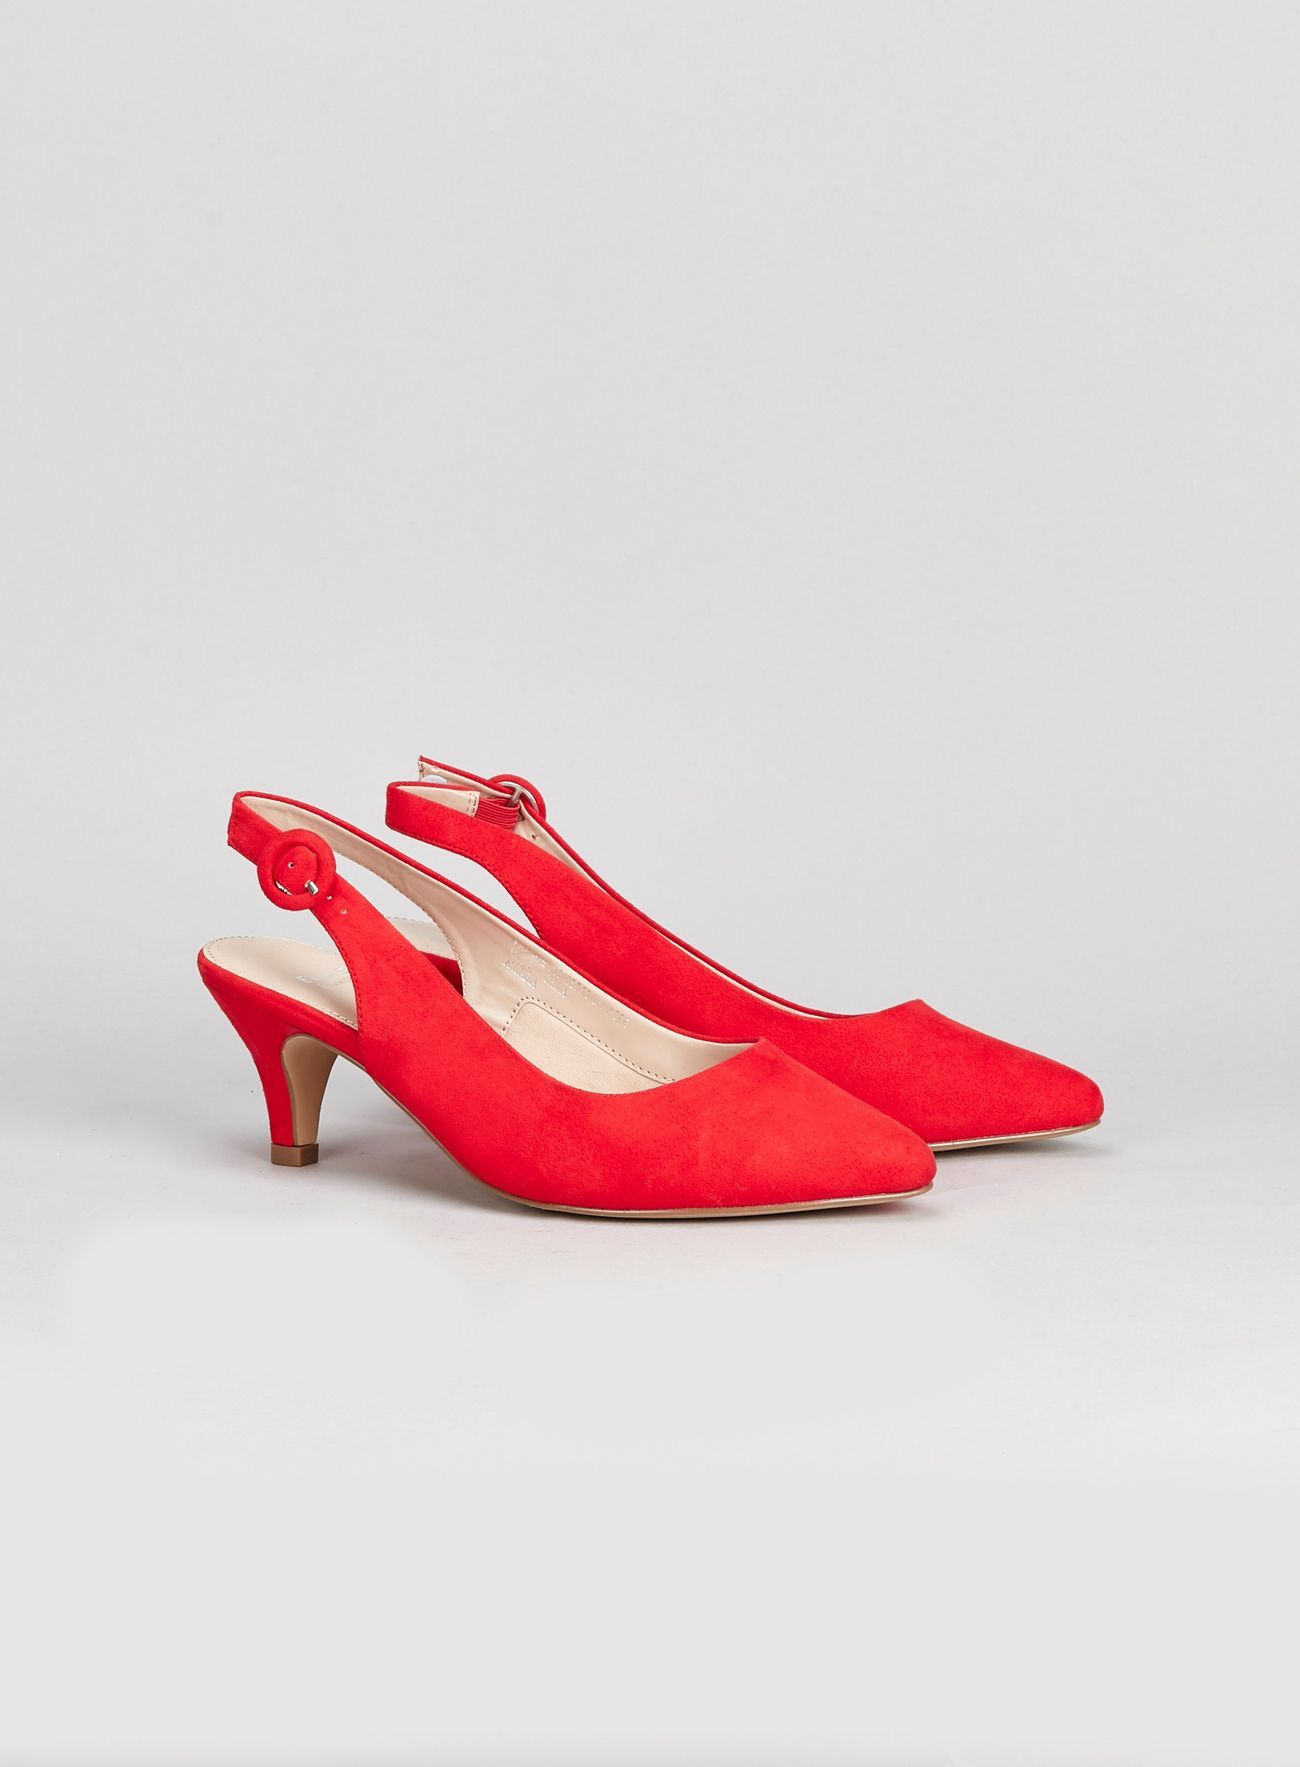 d179880d501e0 WIDE FIT Red Slingback Kitten Heel Court Shoes in 2019 | Things To ...